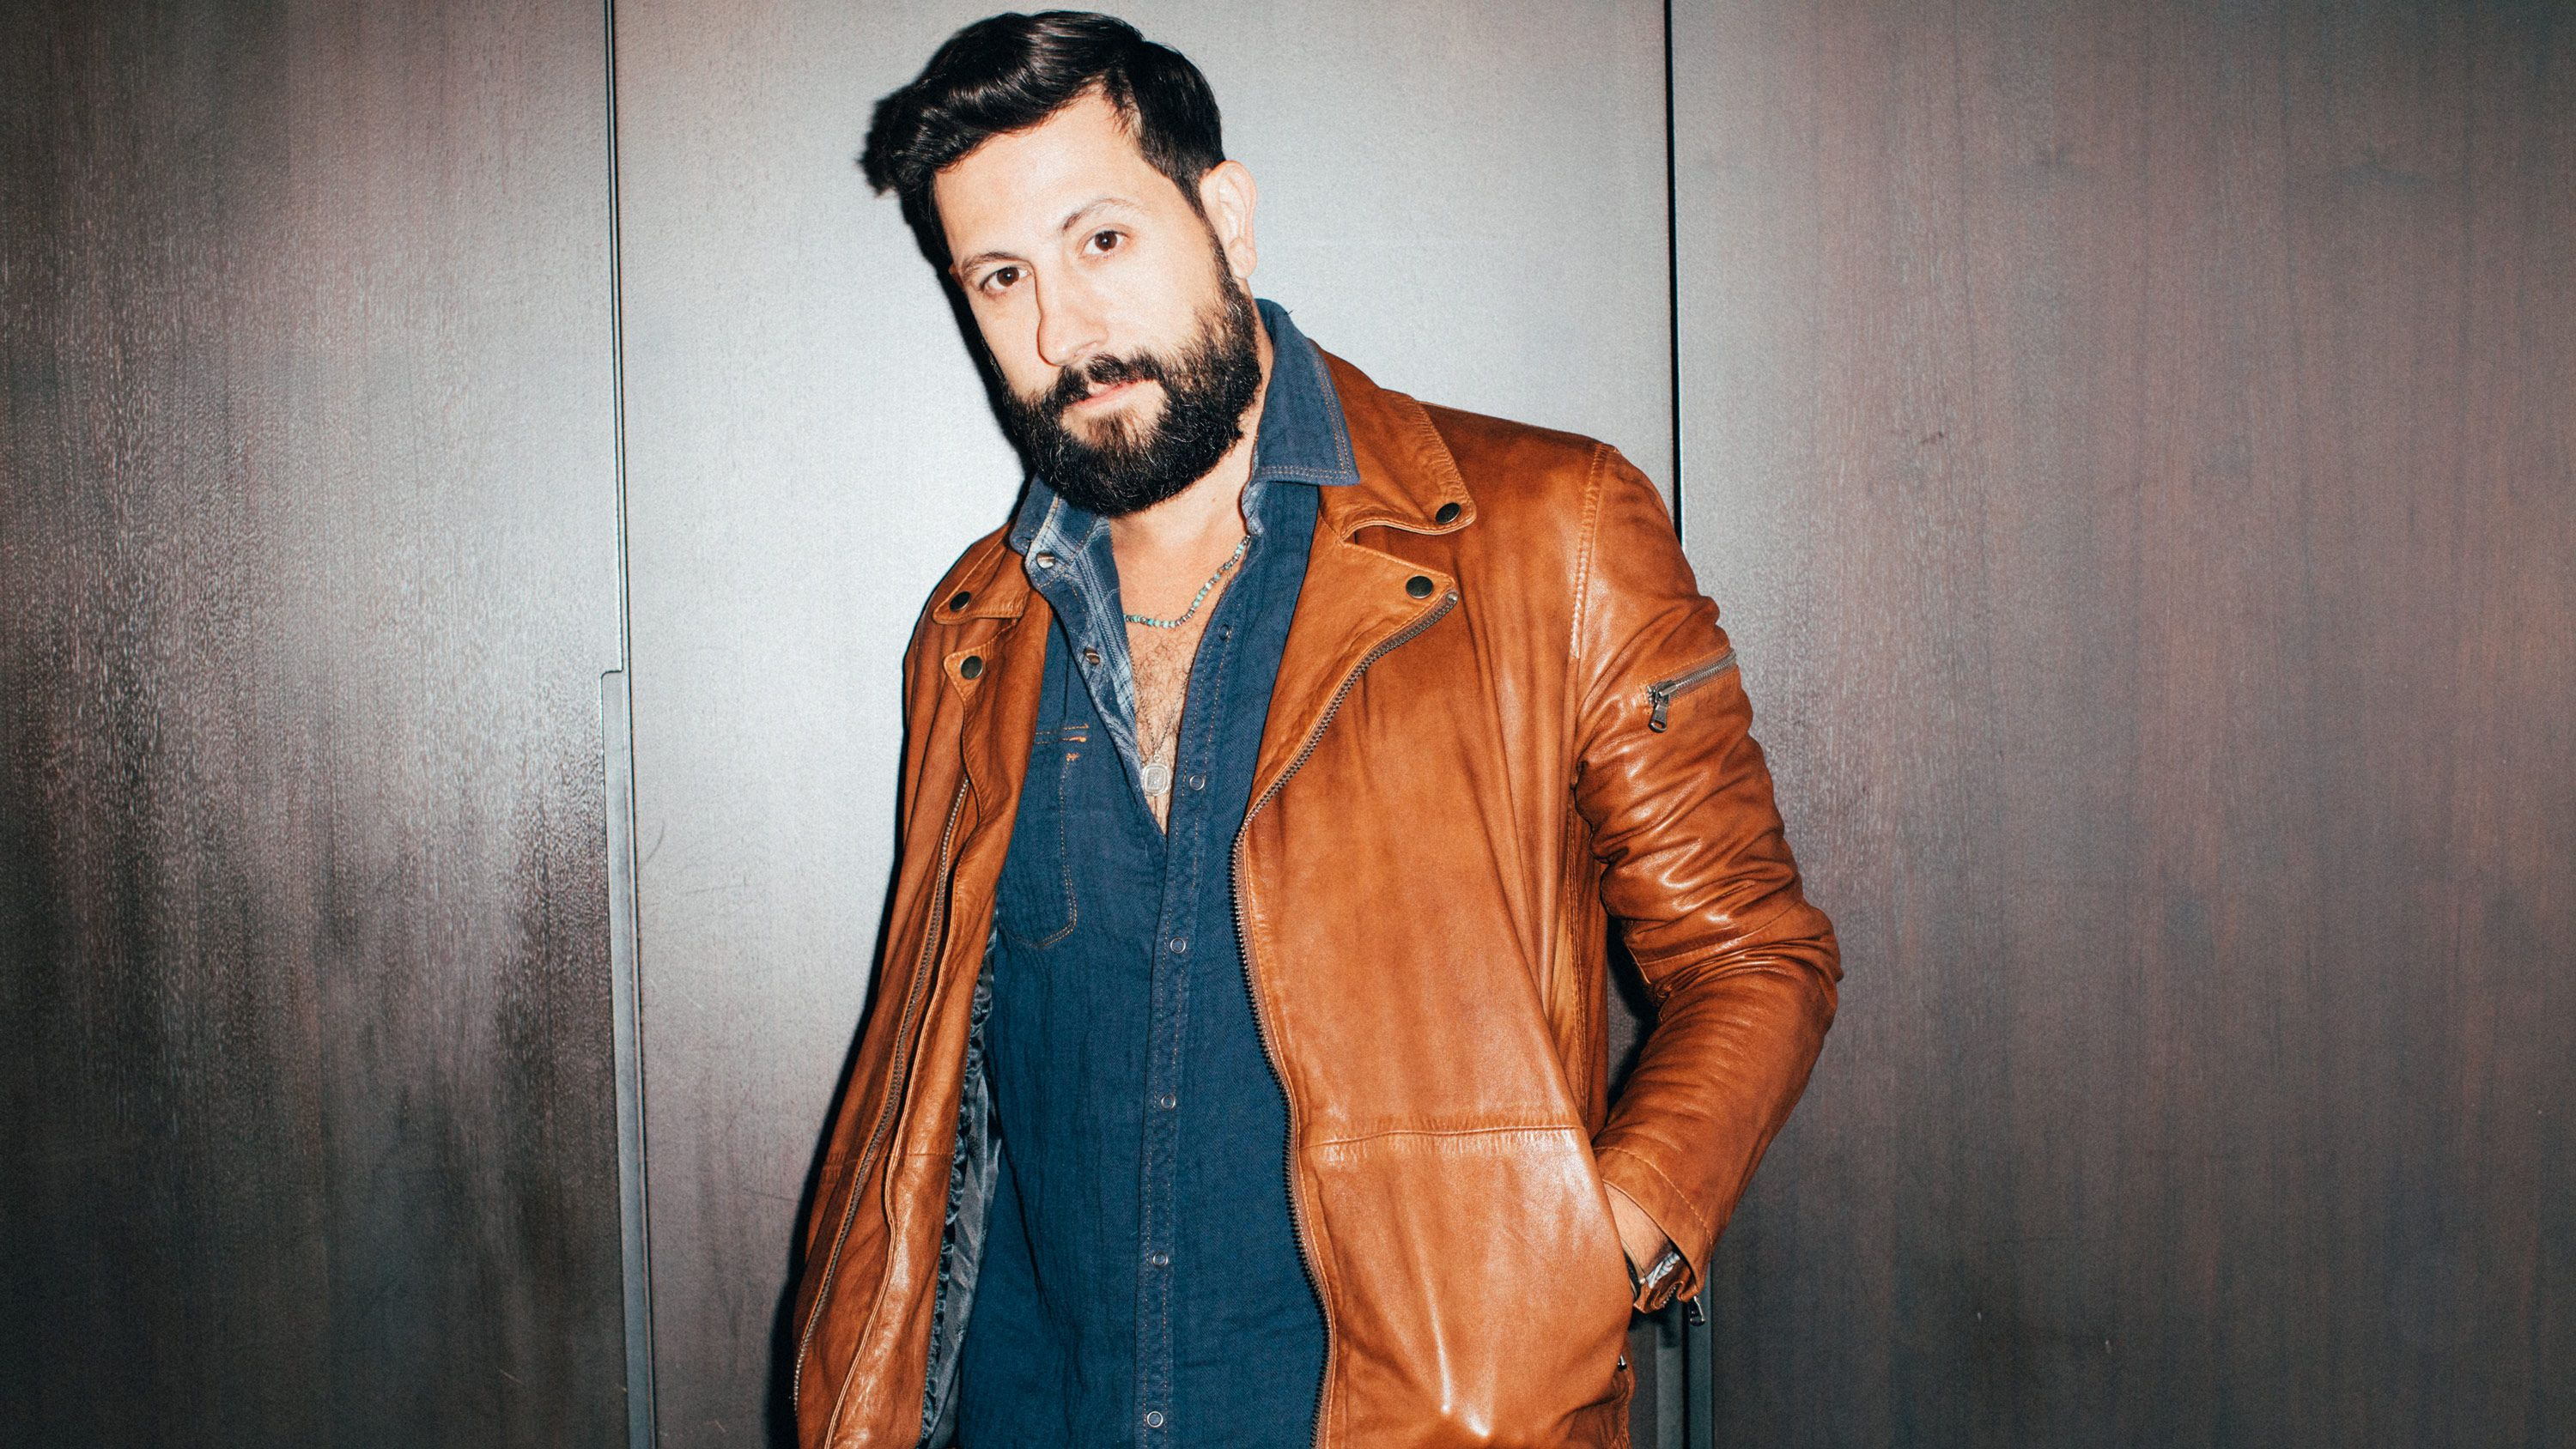 Matthew Ramsey Dressed for the Job He Wanted—Now He's a Country Singer